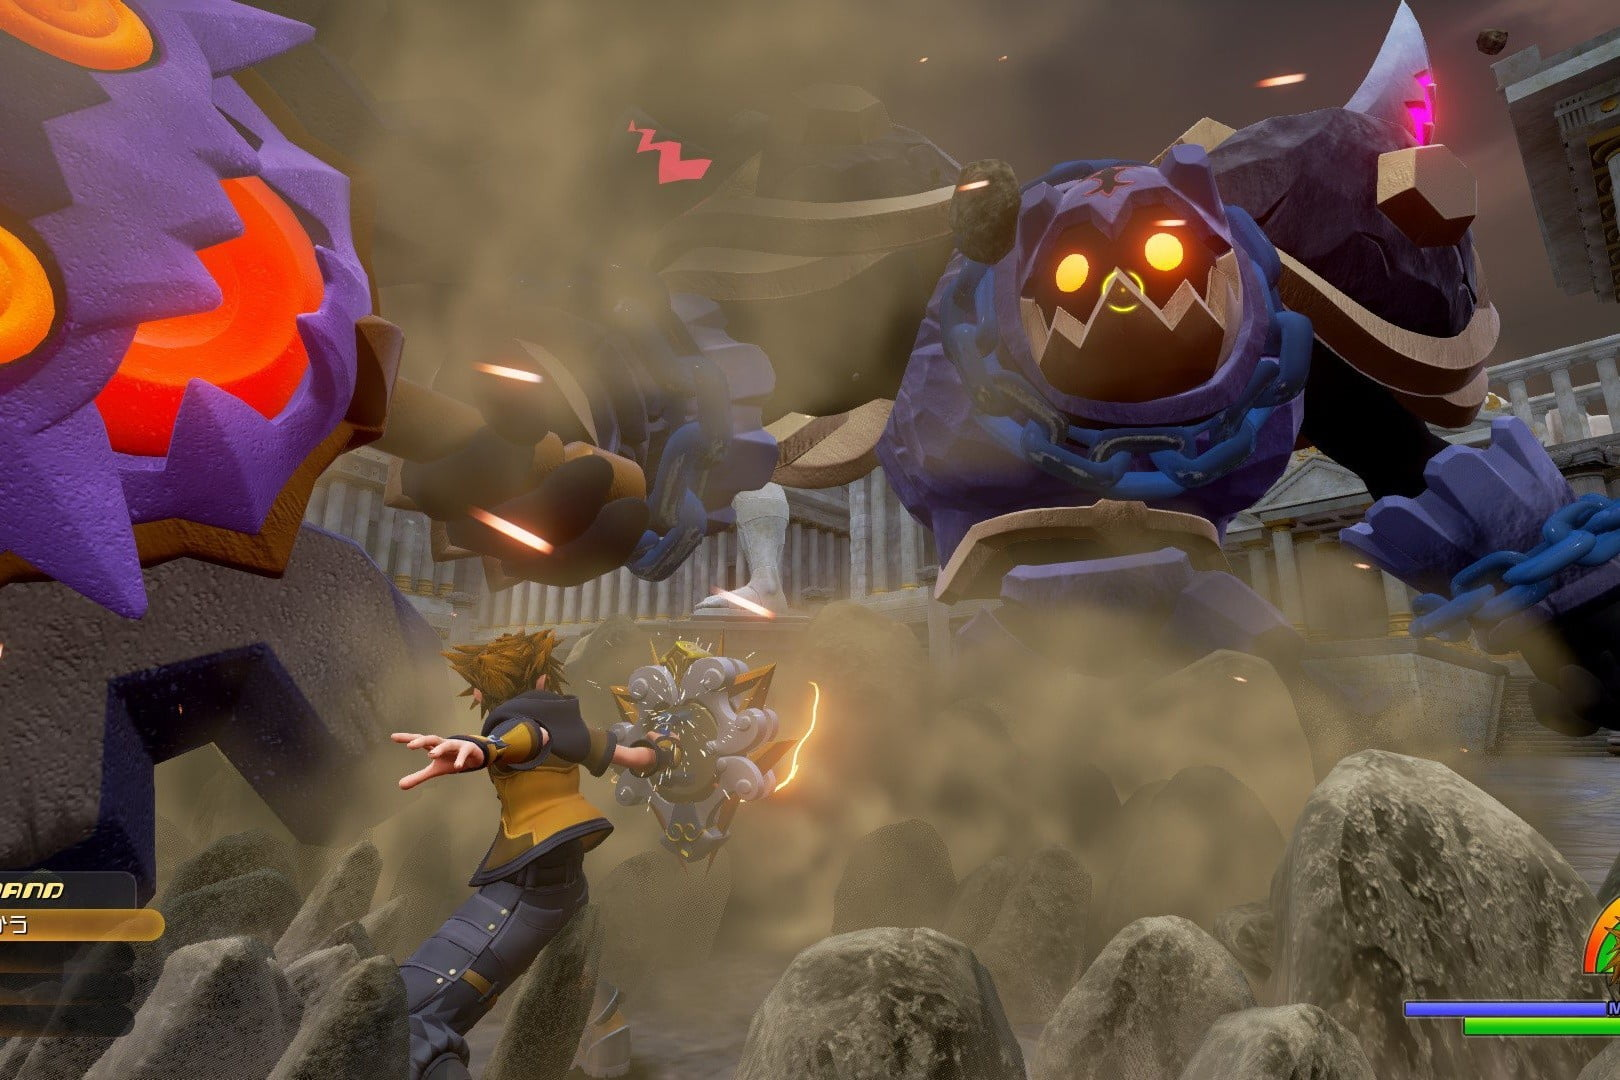 Kingdom Hearts 3': Everything We Know (Story, Worlds, DLC